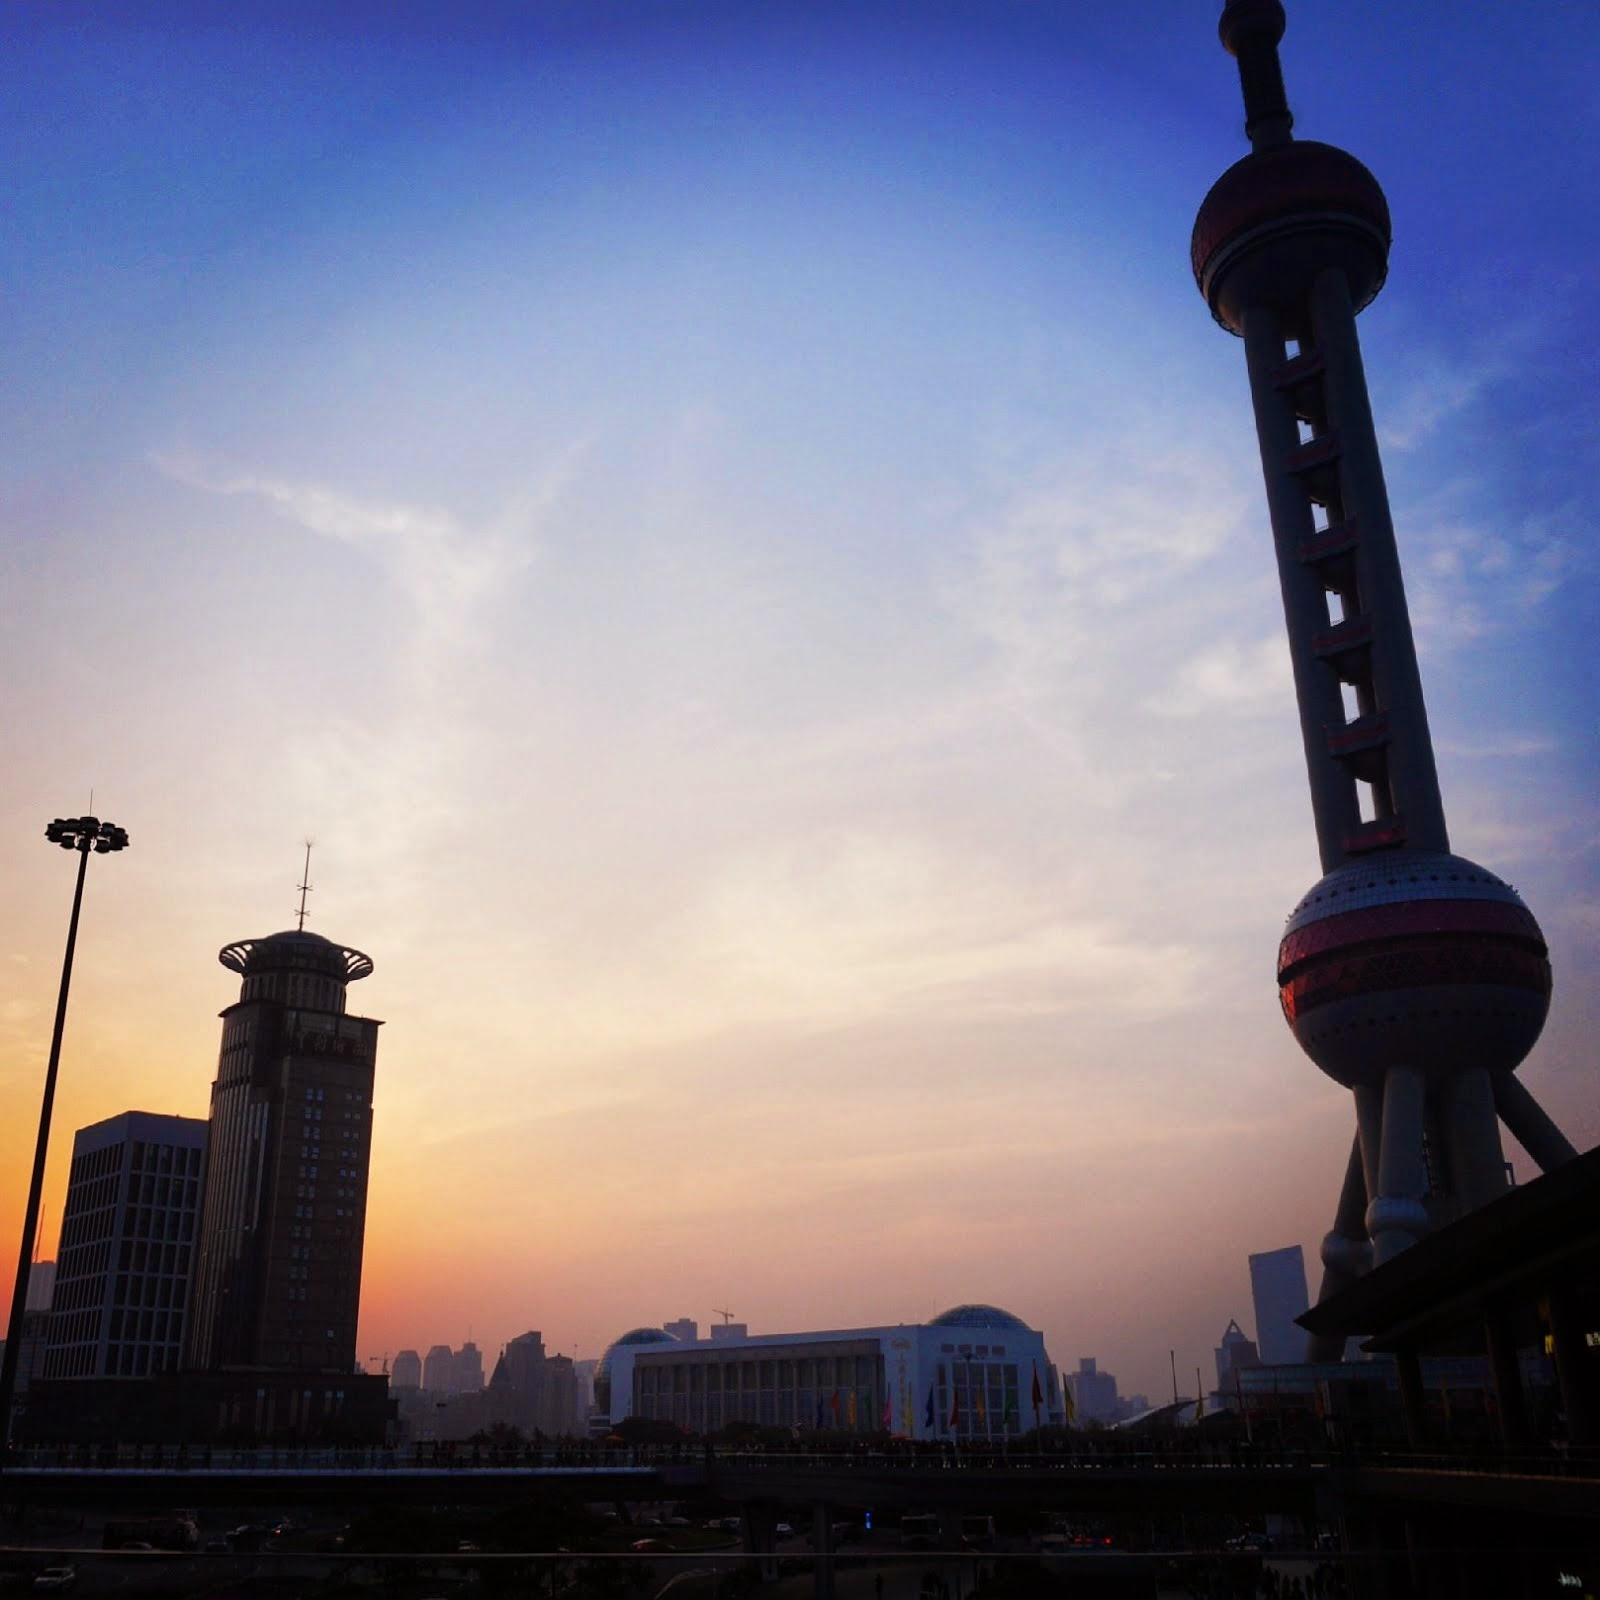 ORIENTAL PEARL TV TOWER SHANGHAI CHINA SUNSET